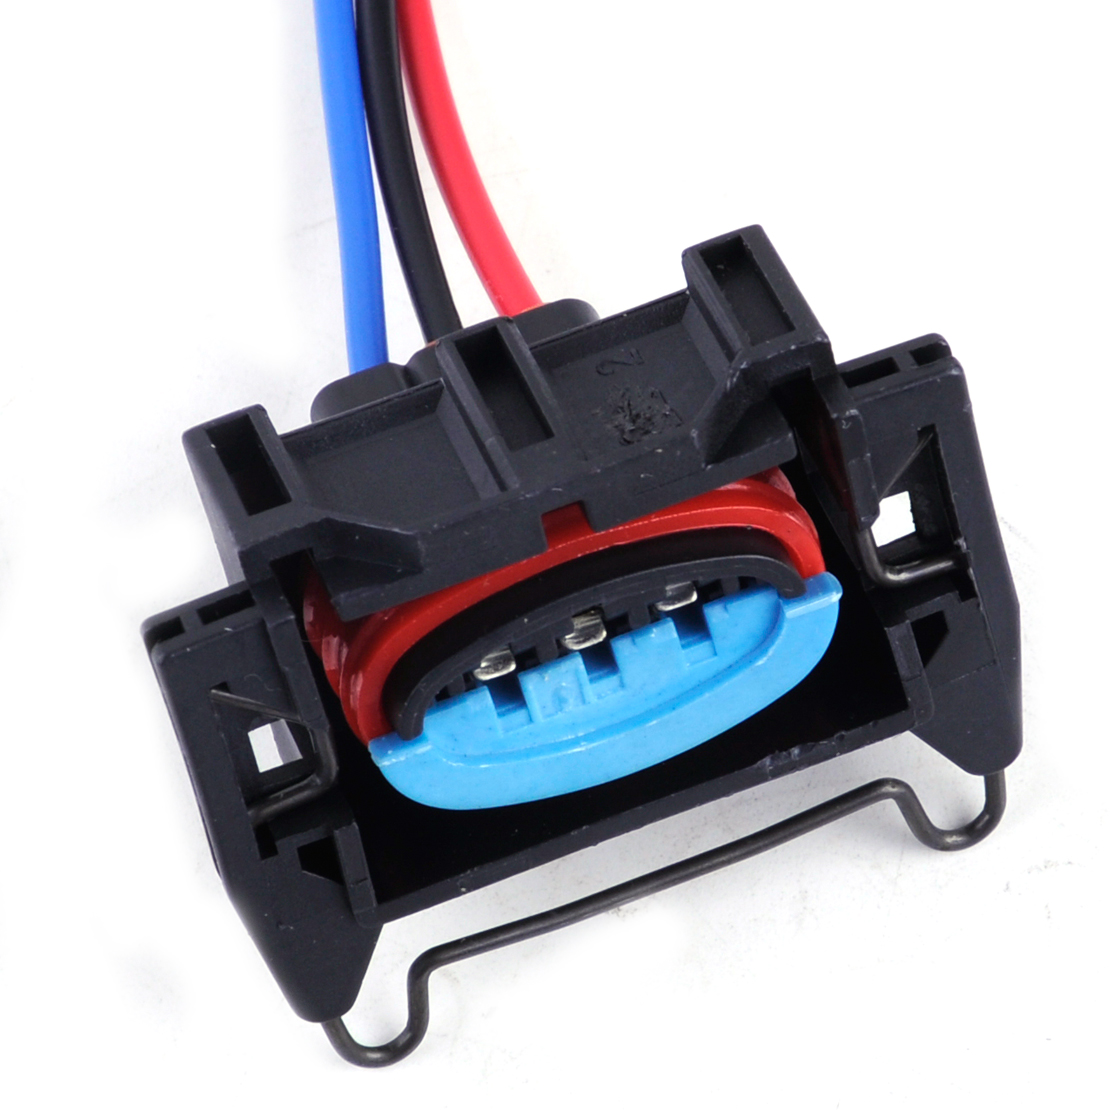 citall new ignition coil pack wiring harness connector 645 302 3u2z14s411tna 1p1727 57 5508 for ford focus ranger contour mazda in ignition coil from  [ 1110 x 1110 Pixel ]